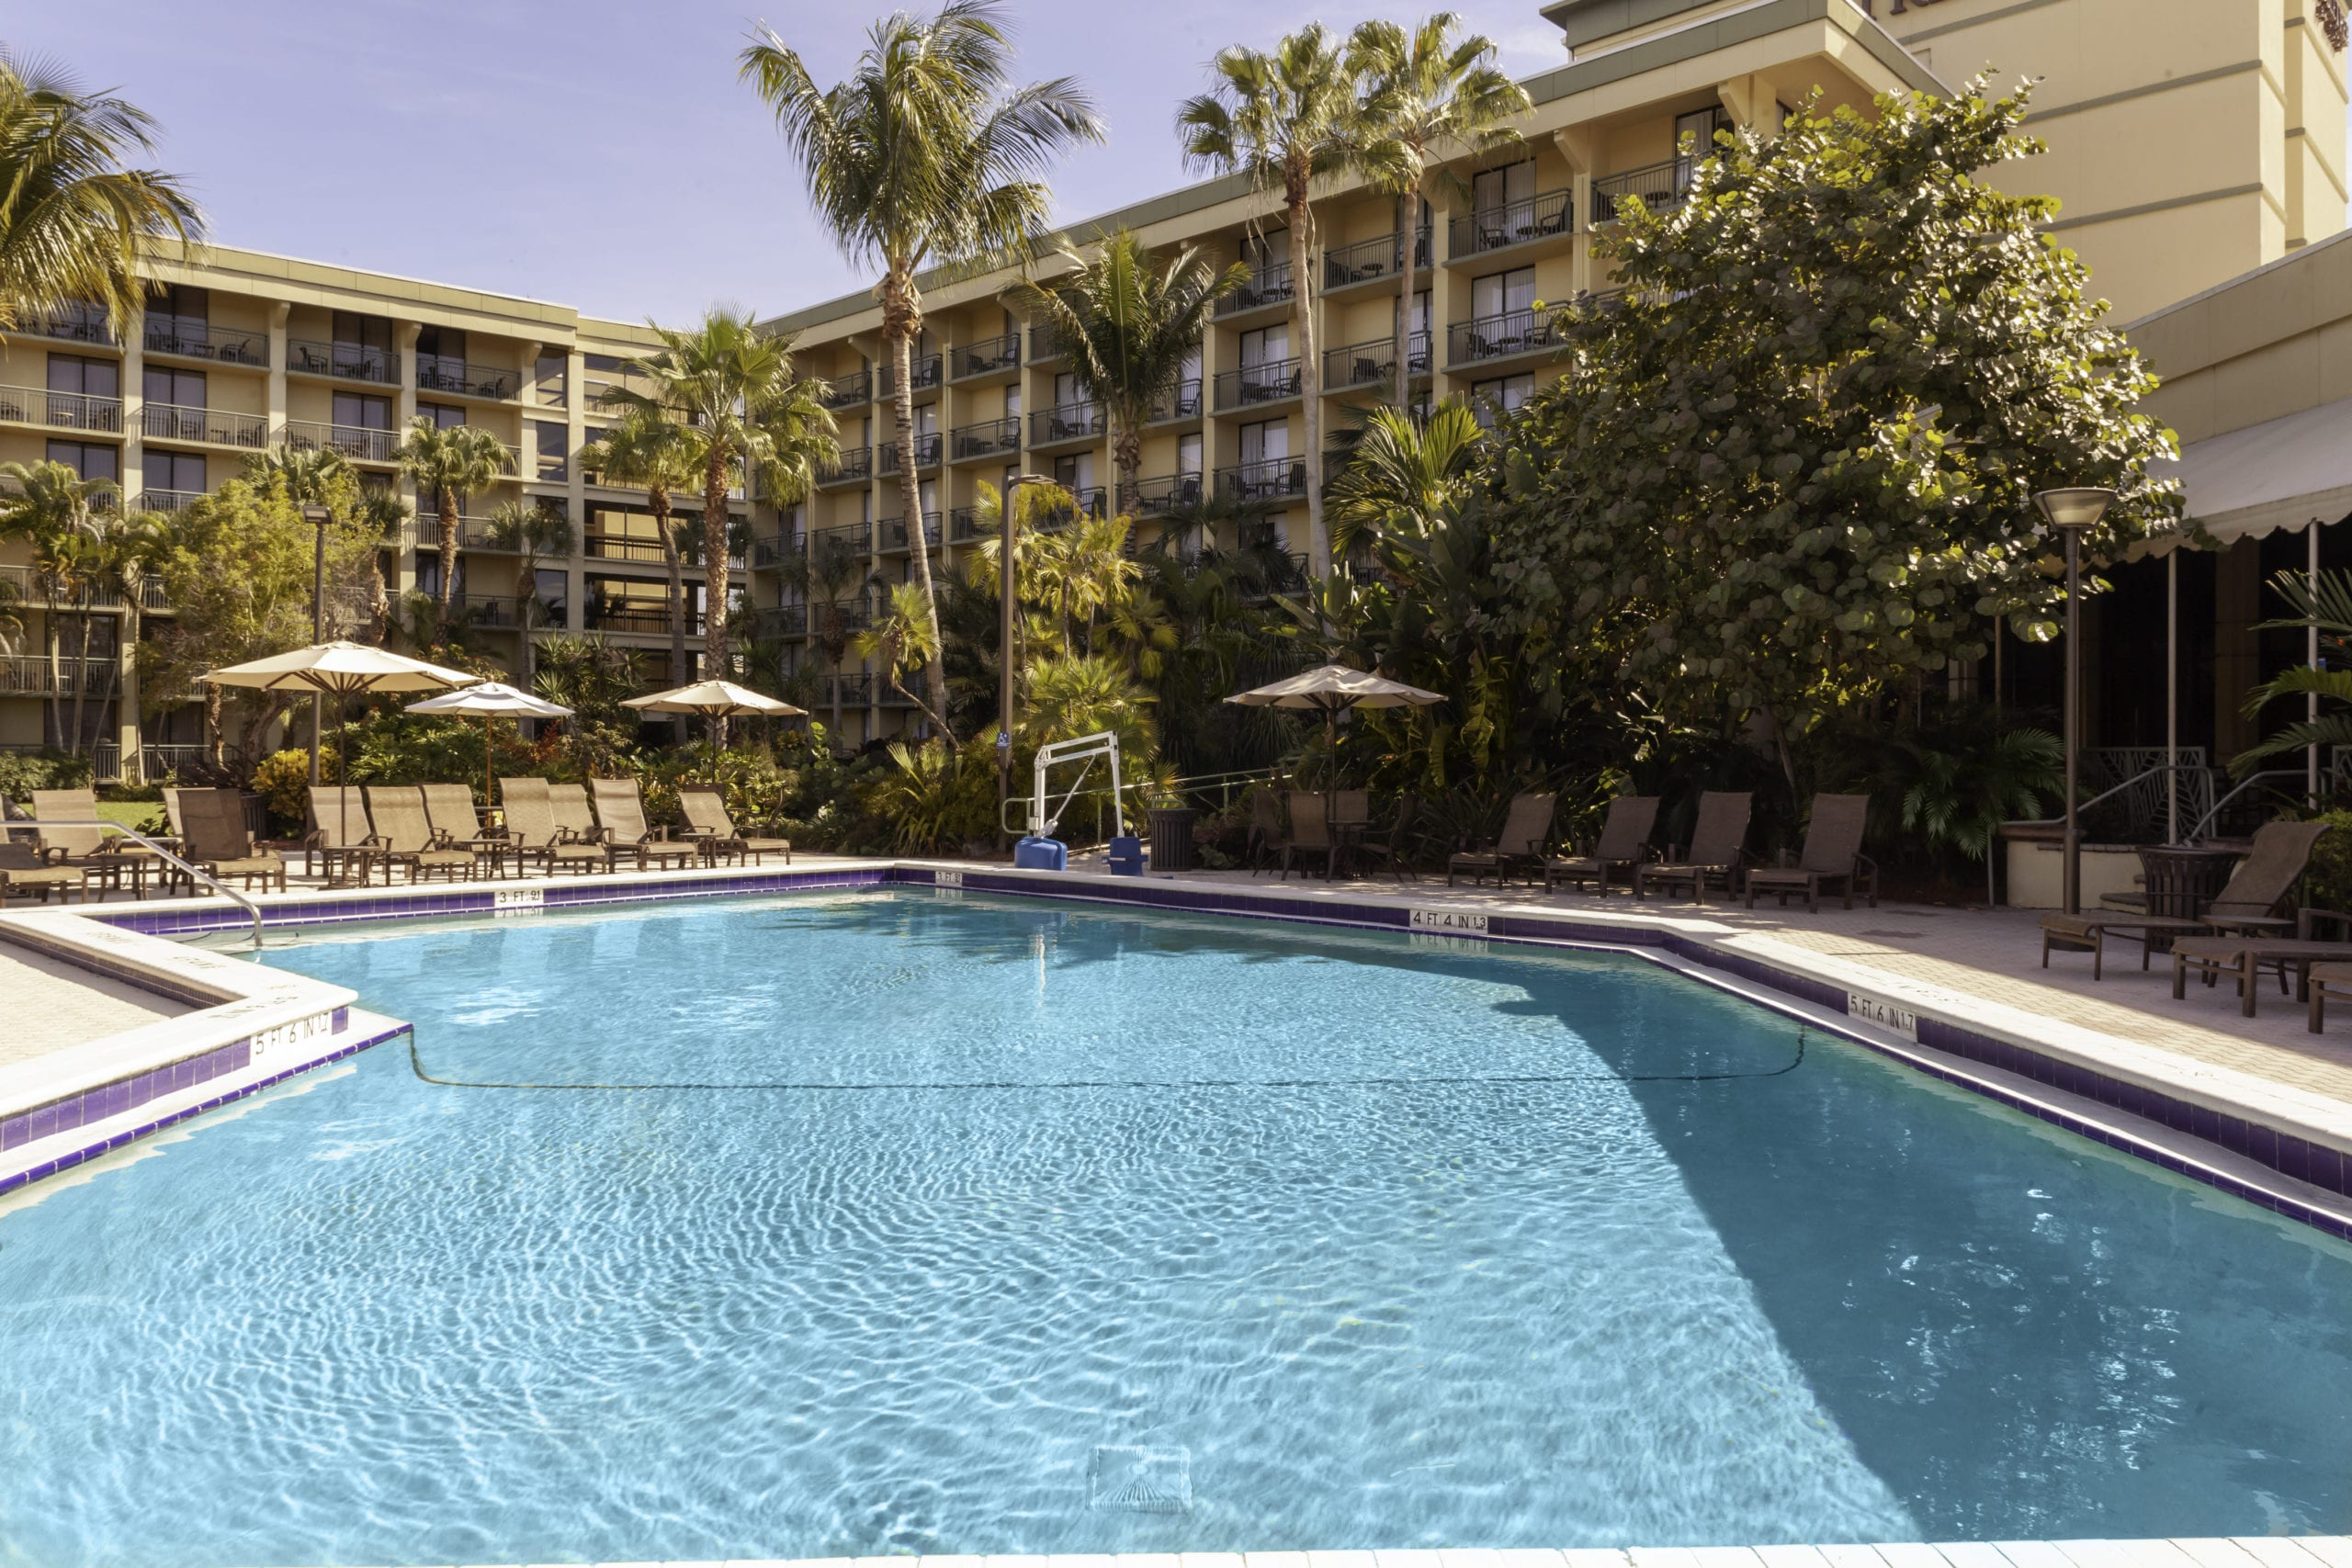 Doubletree Hotel and Executive Meeting Center Pool